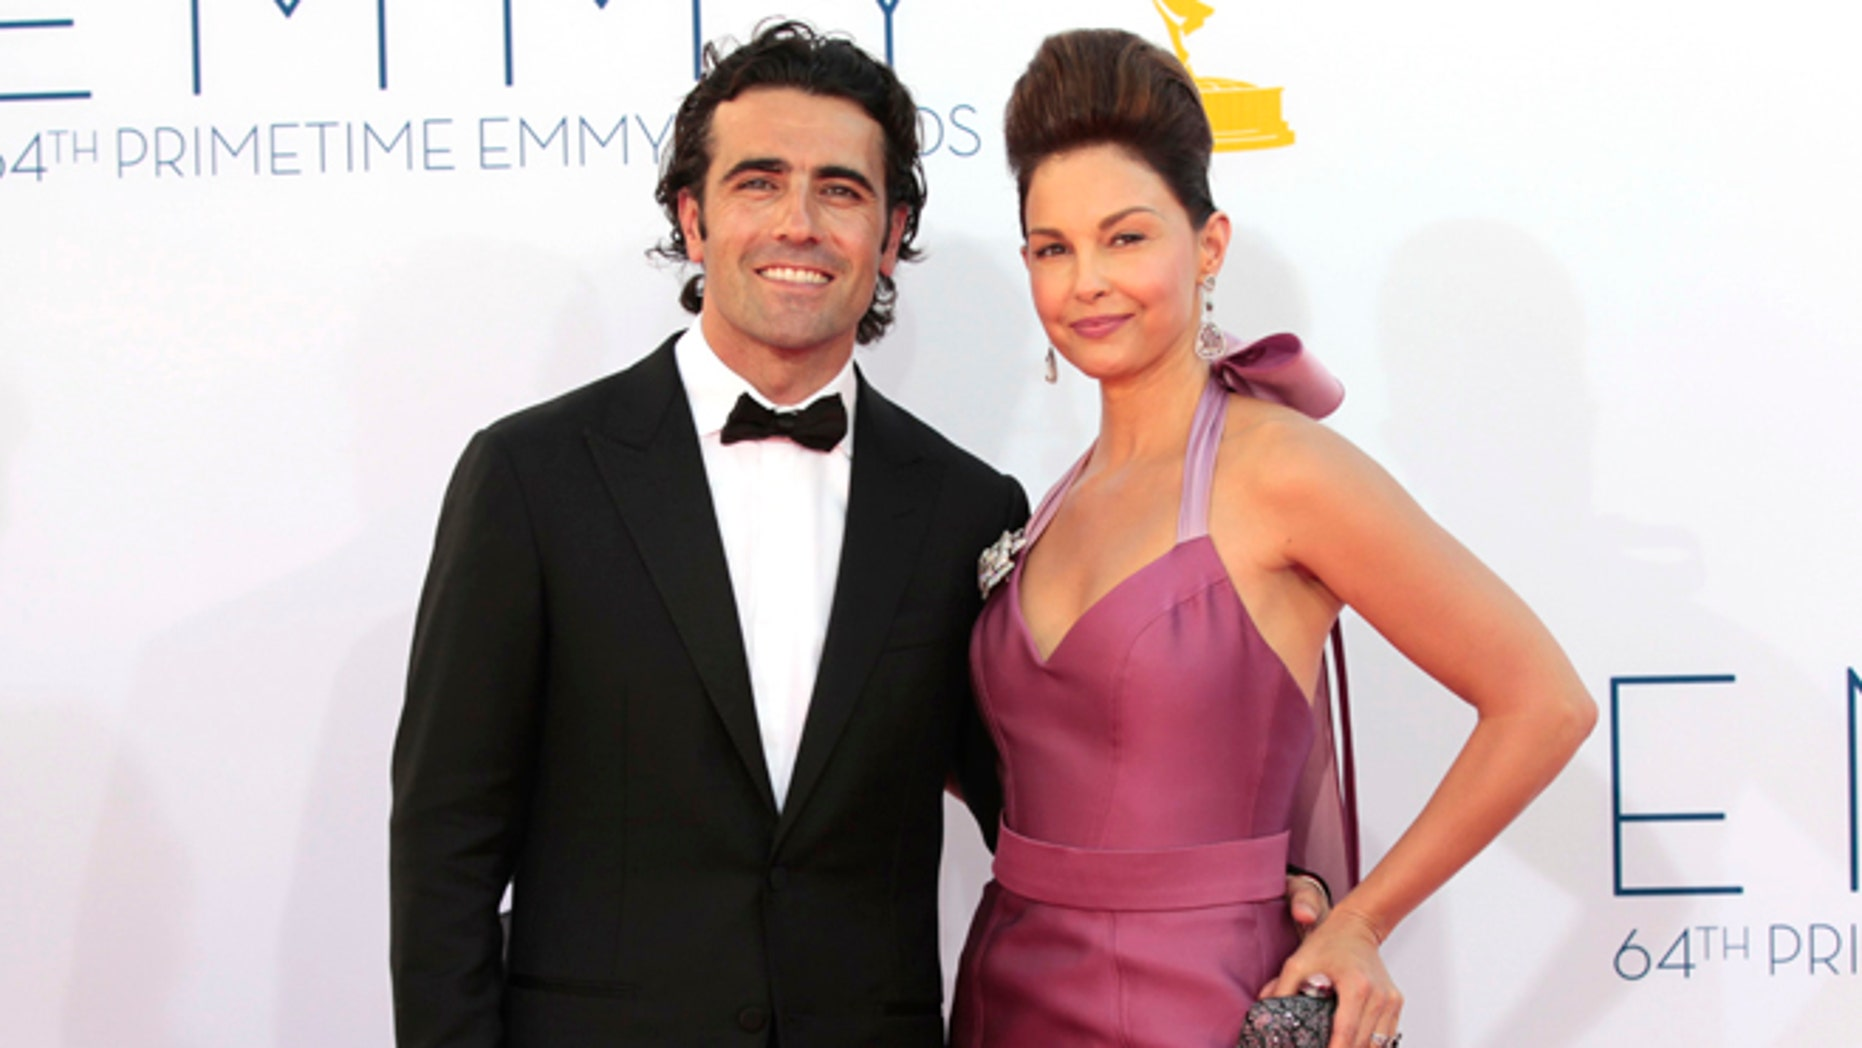 Ashley Judd and Scottish racecar driver Dario Franchitti arrive at the 64th Primetime Emmy Awards in Los Angeles September 23, 2012.